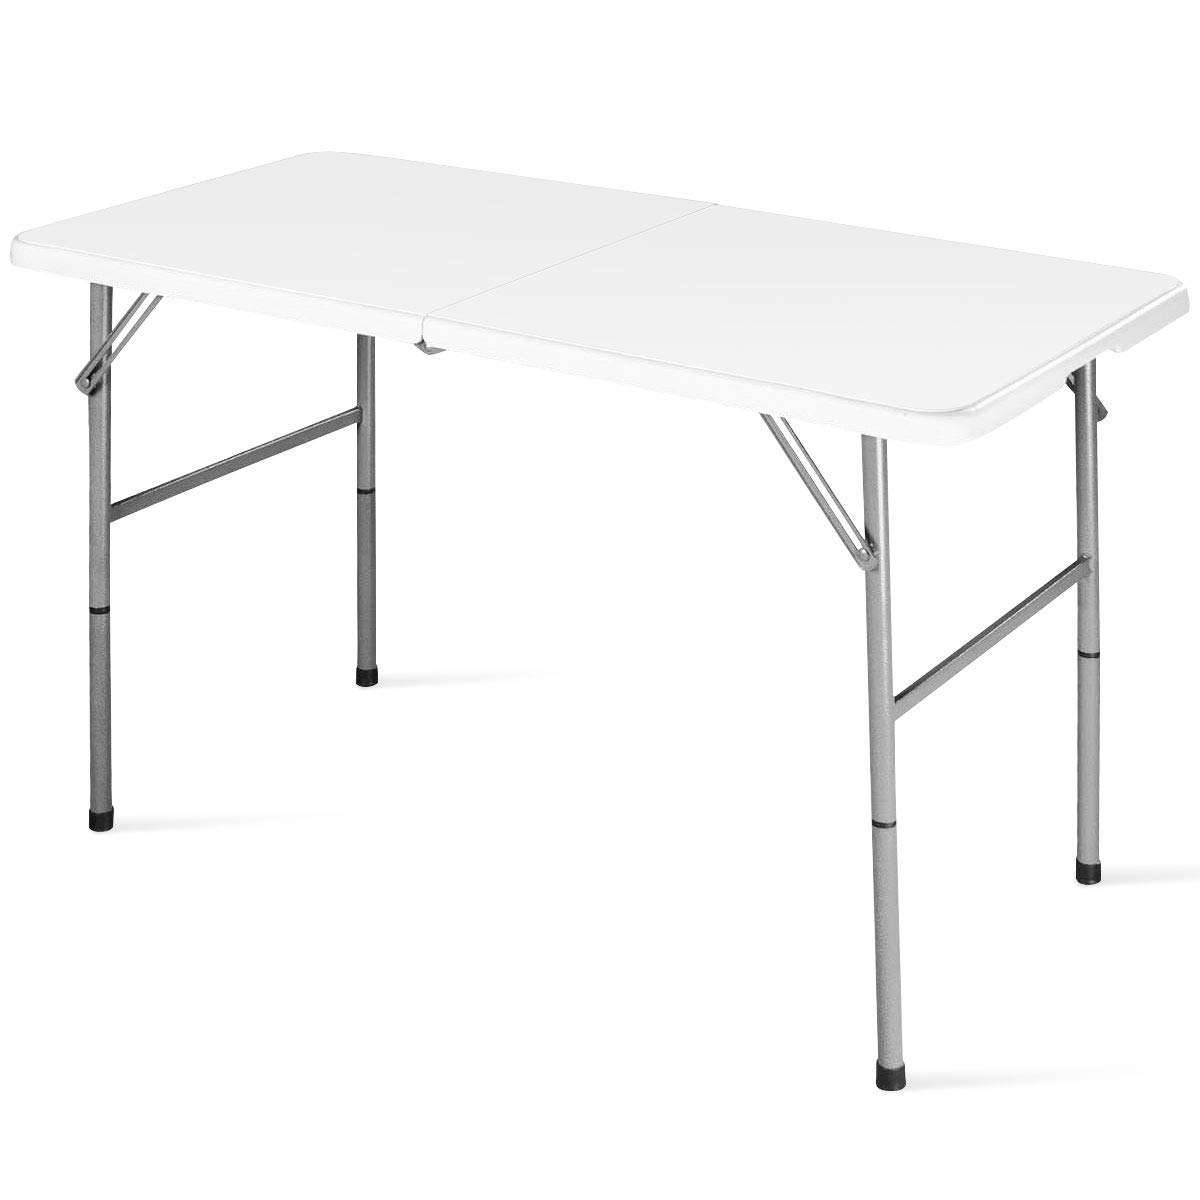 SPSUPE, White Portable Folding, Plastic Camp Tables, Ideal for Indoor Outdoor Picnic Party Dining by SPSUPE